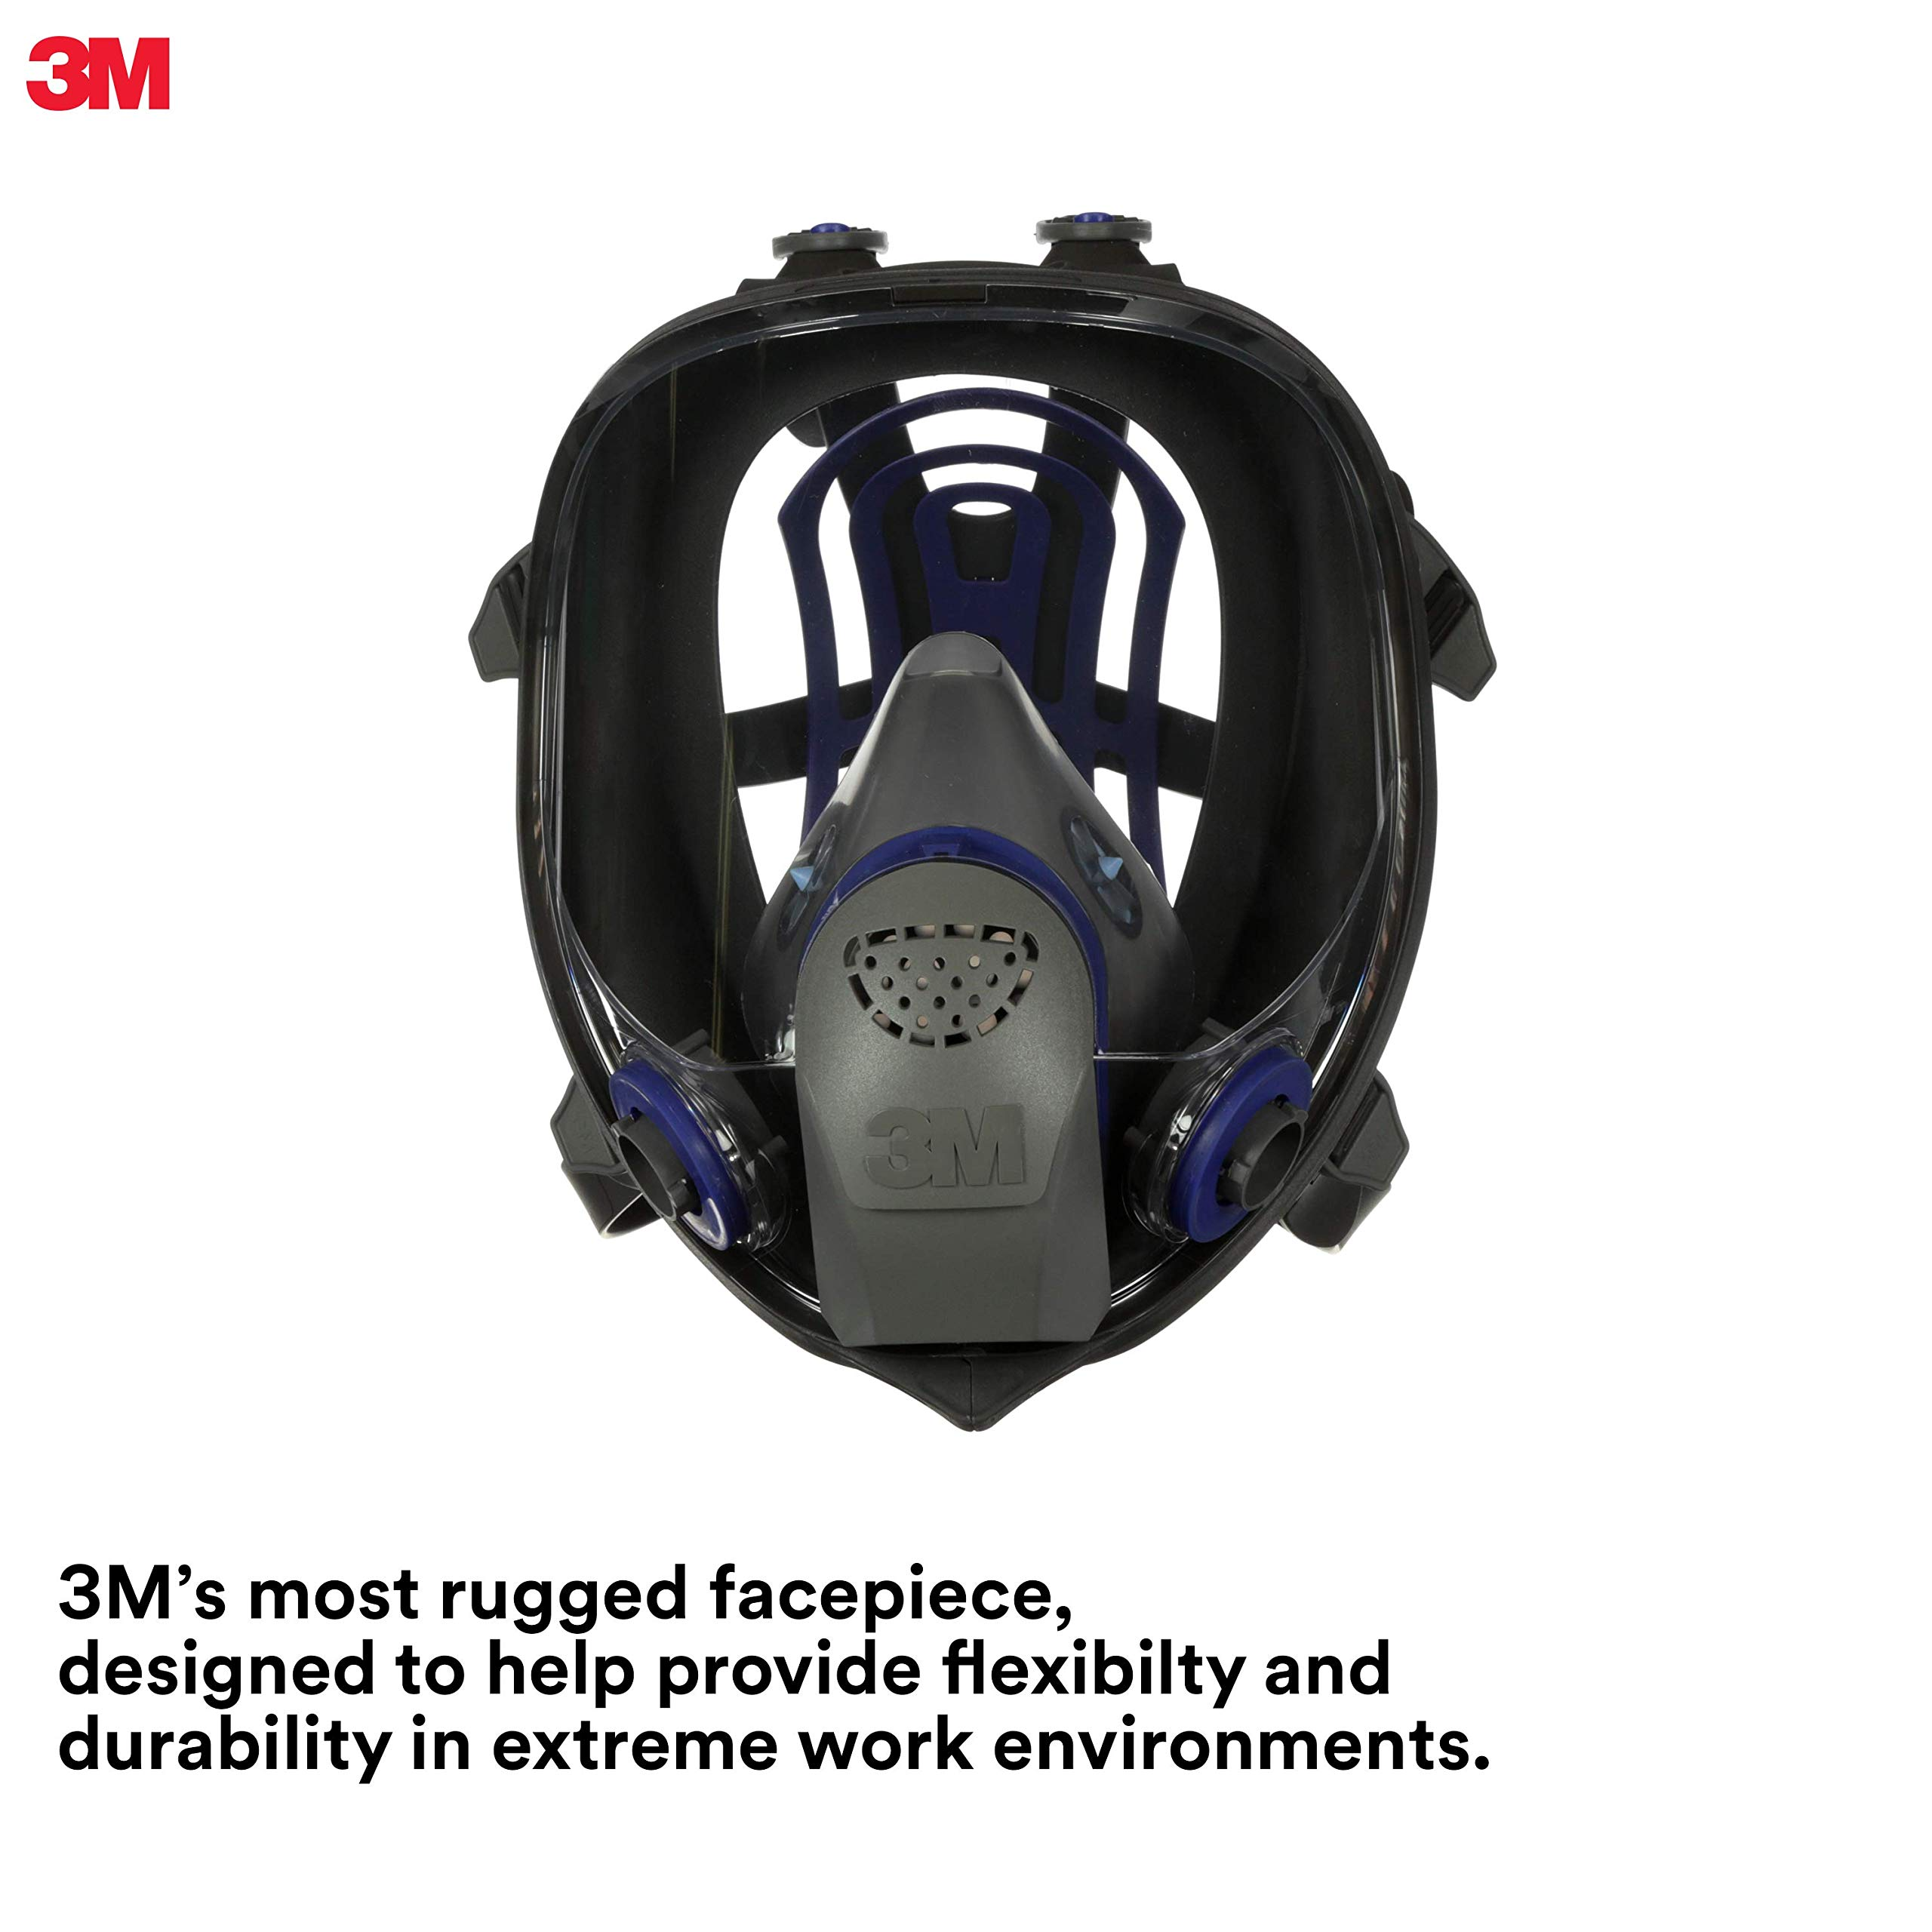 3M Ultimate FX Full Facepiece Reusable Respirator FF-402, Mold, Painting, Sanding, Chemicals, Gases, Dust, Medium by 3M Personal Protective Equipment